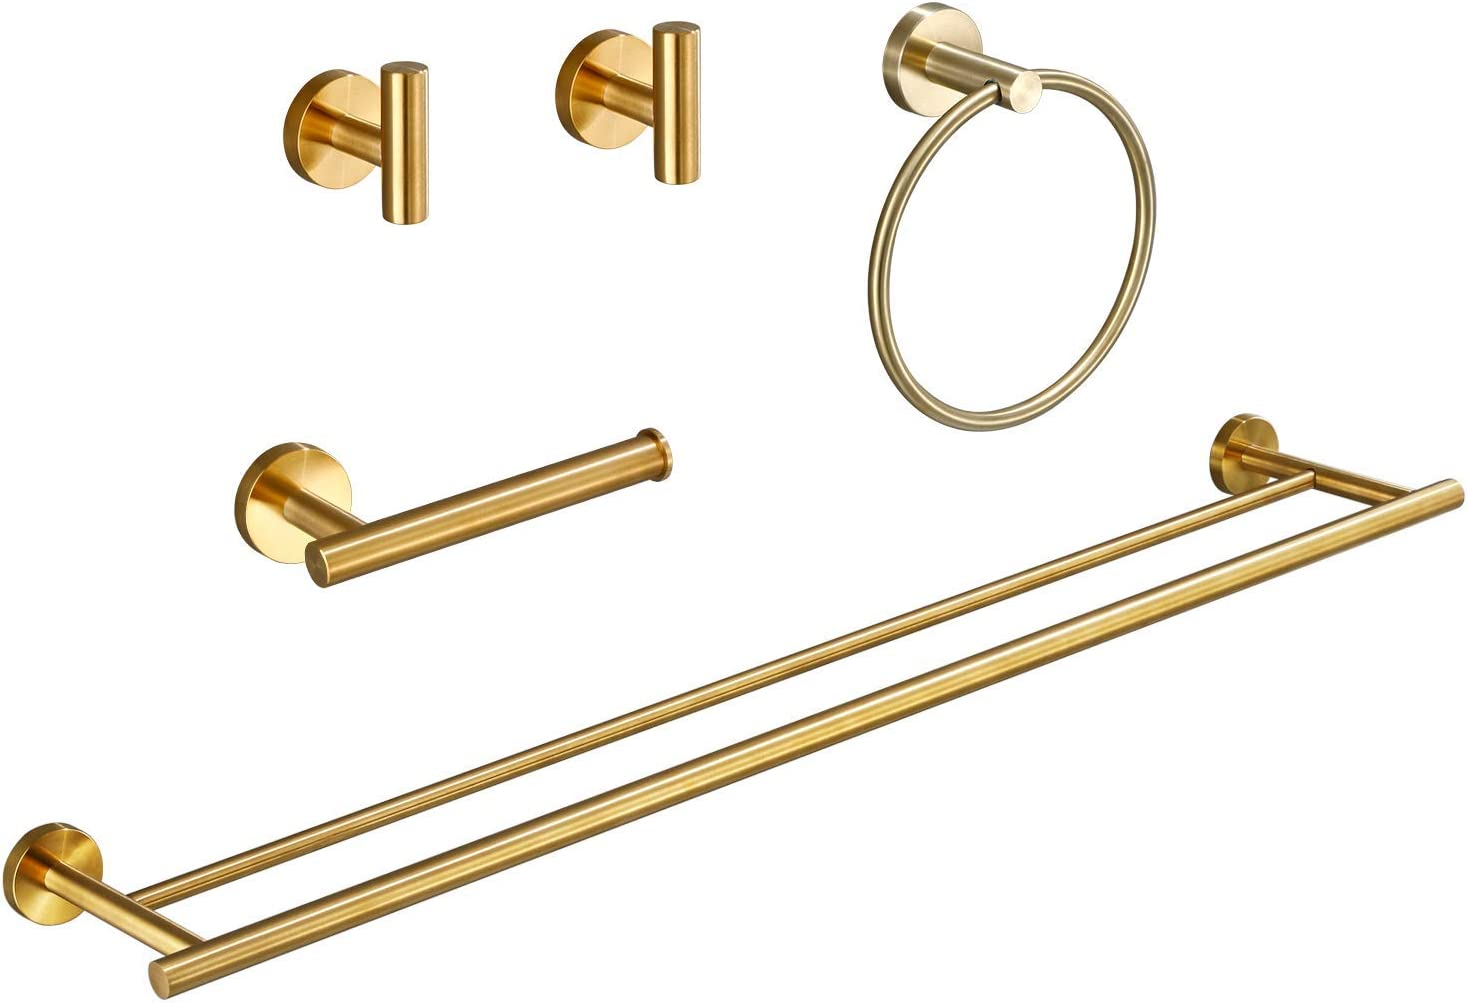 USHOWER Brushed Gold Bathroom Hardware Set, Modern Style Bathroom Accessories Kit, Includes 24 Inch Double Towel Bar, 5 Piece: Kitchen & Dining